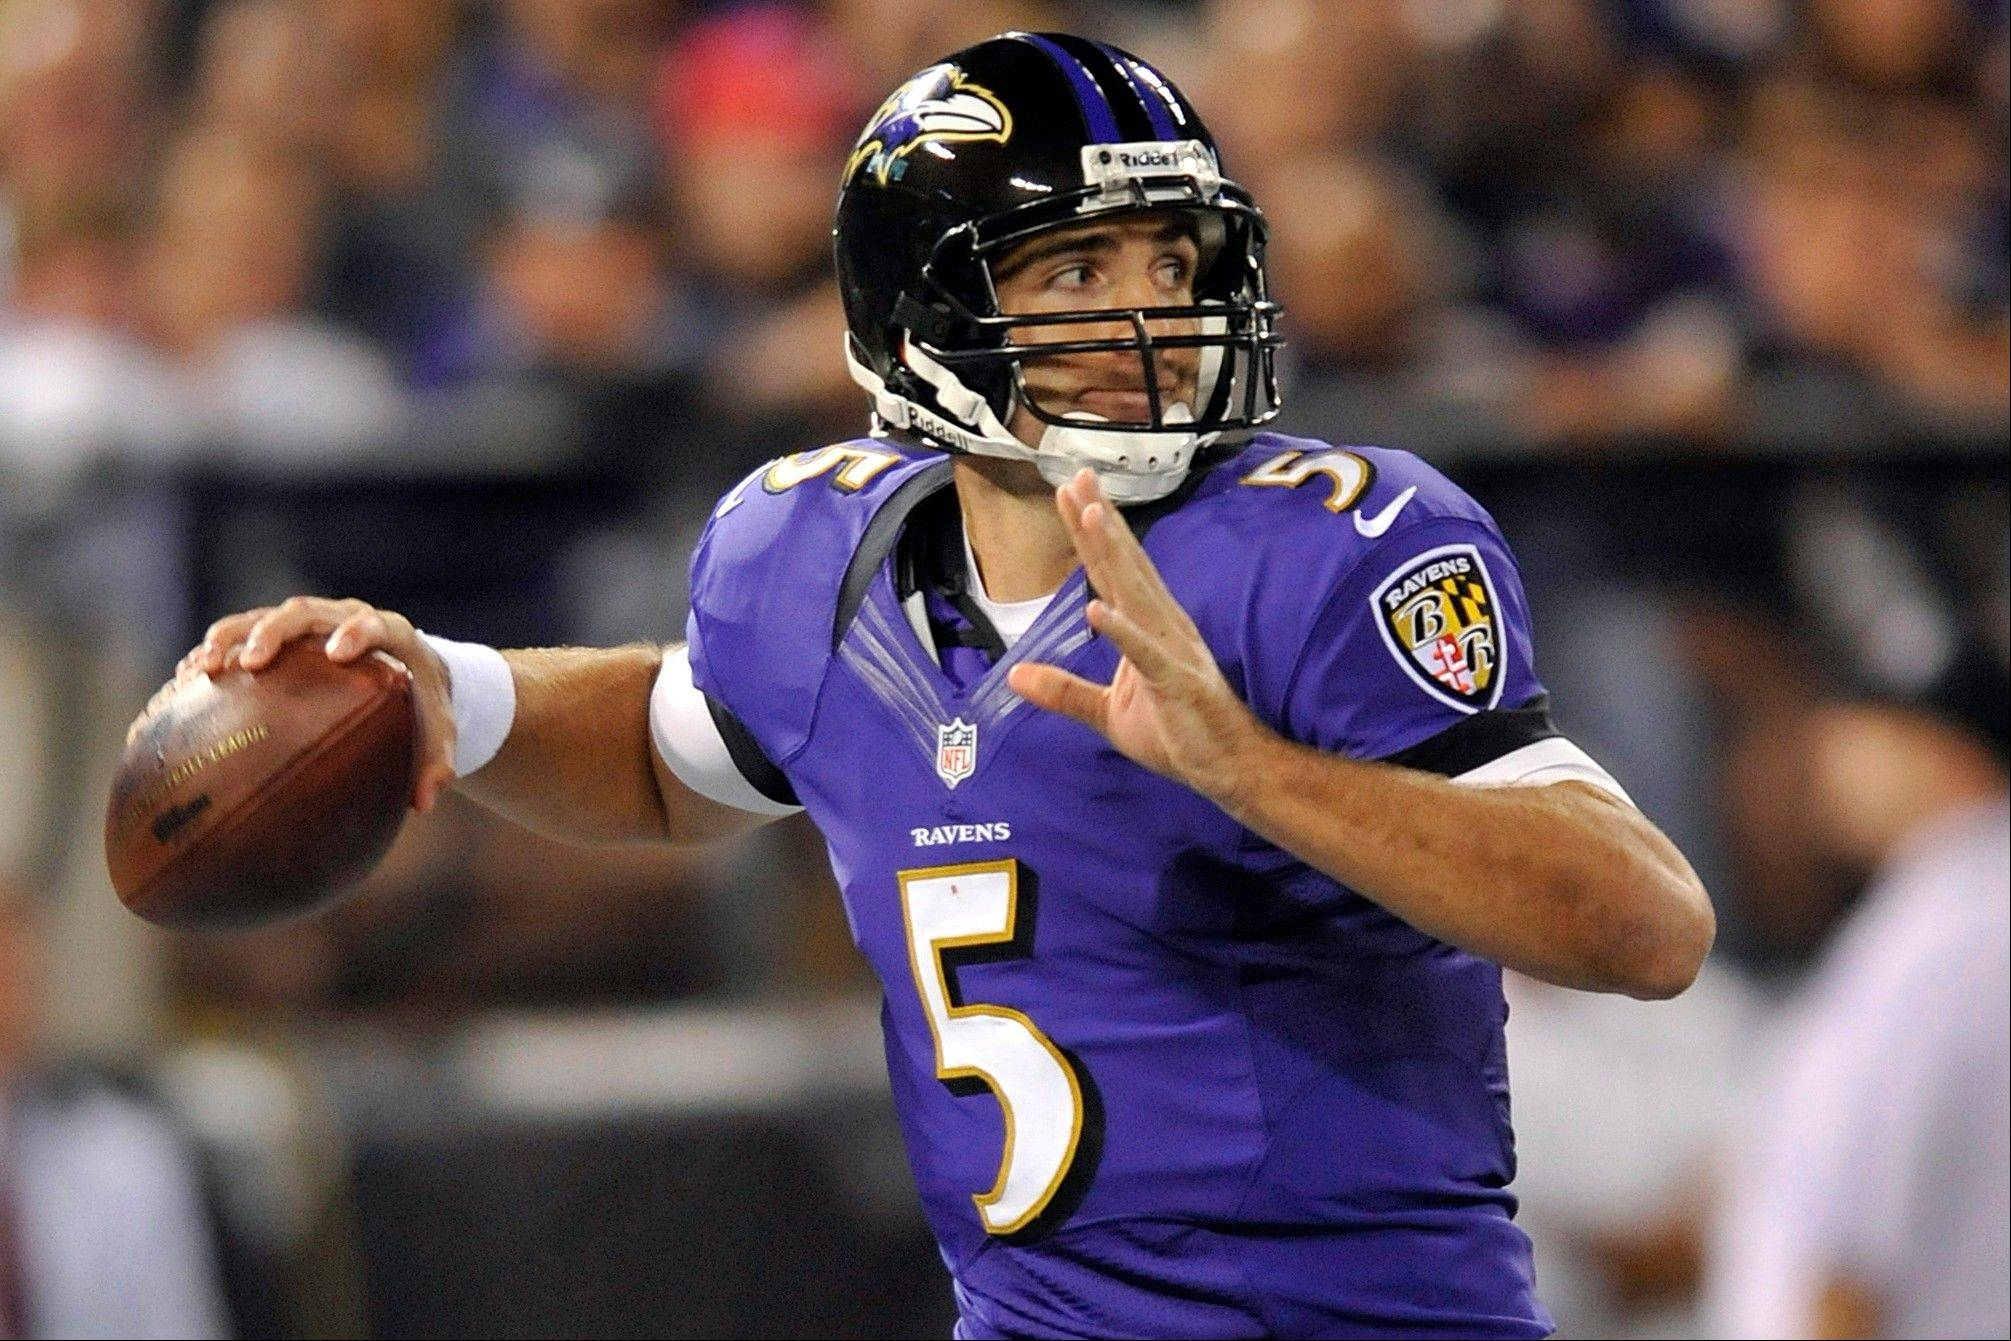 Ravens quarterback Joe Flacco throws to a receiver in the second half Monday against the Cincinnati Bengals in Baltimore.